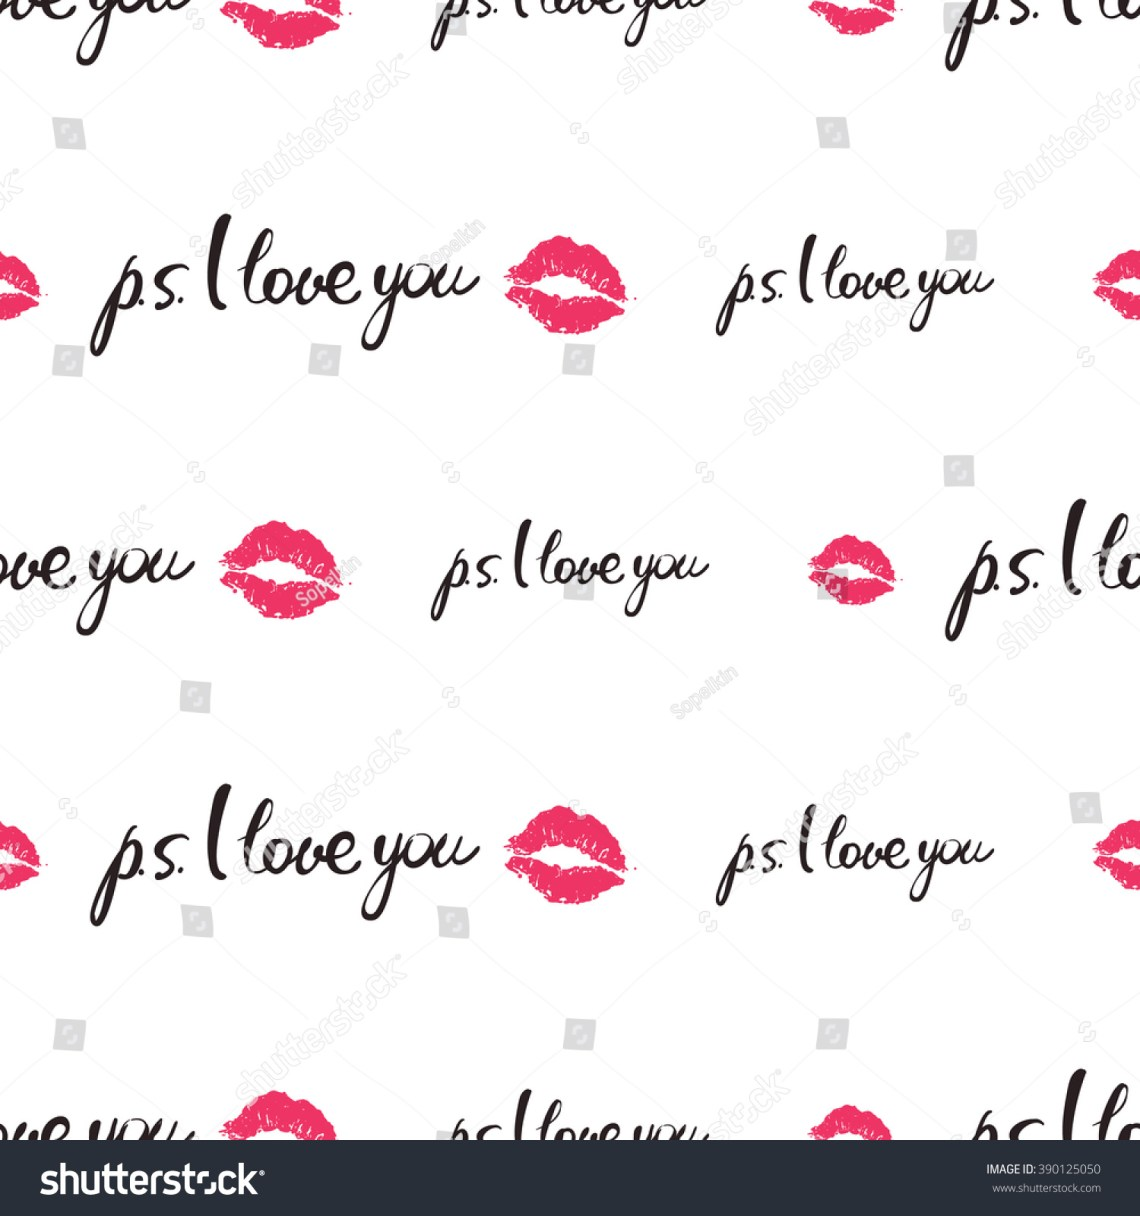 Download Vector Fashion Sketch. Hand Drawn Sing Ps I Love You, Lips ...